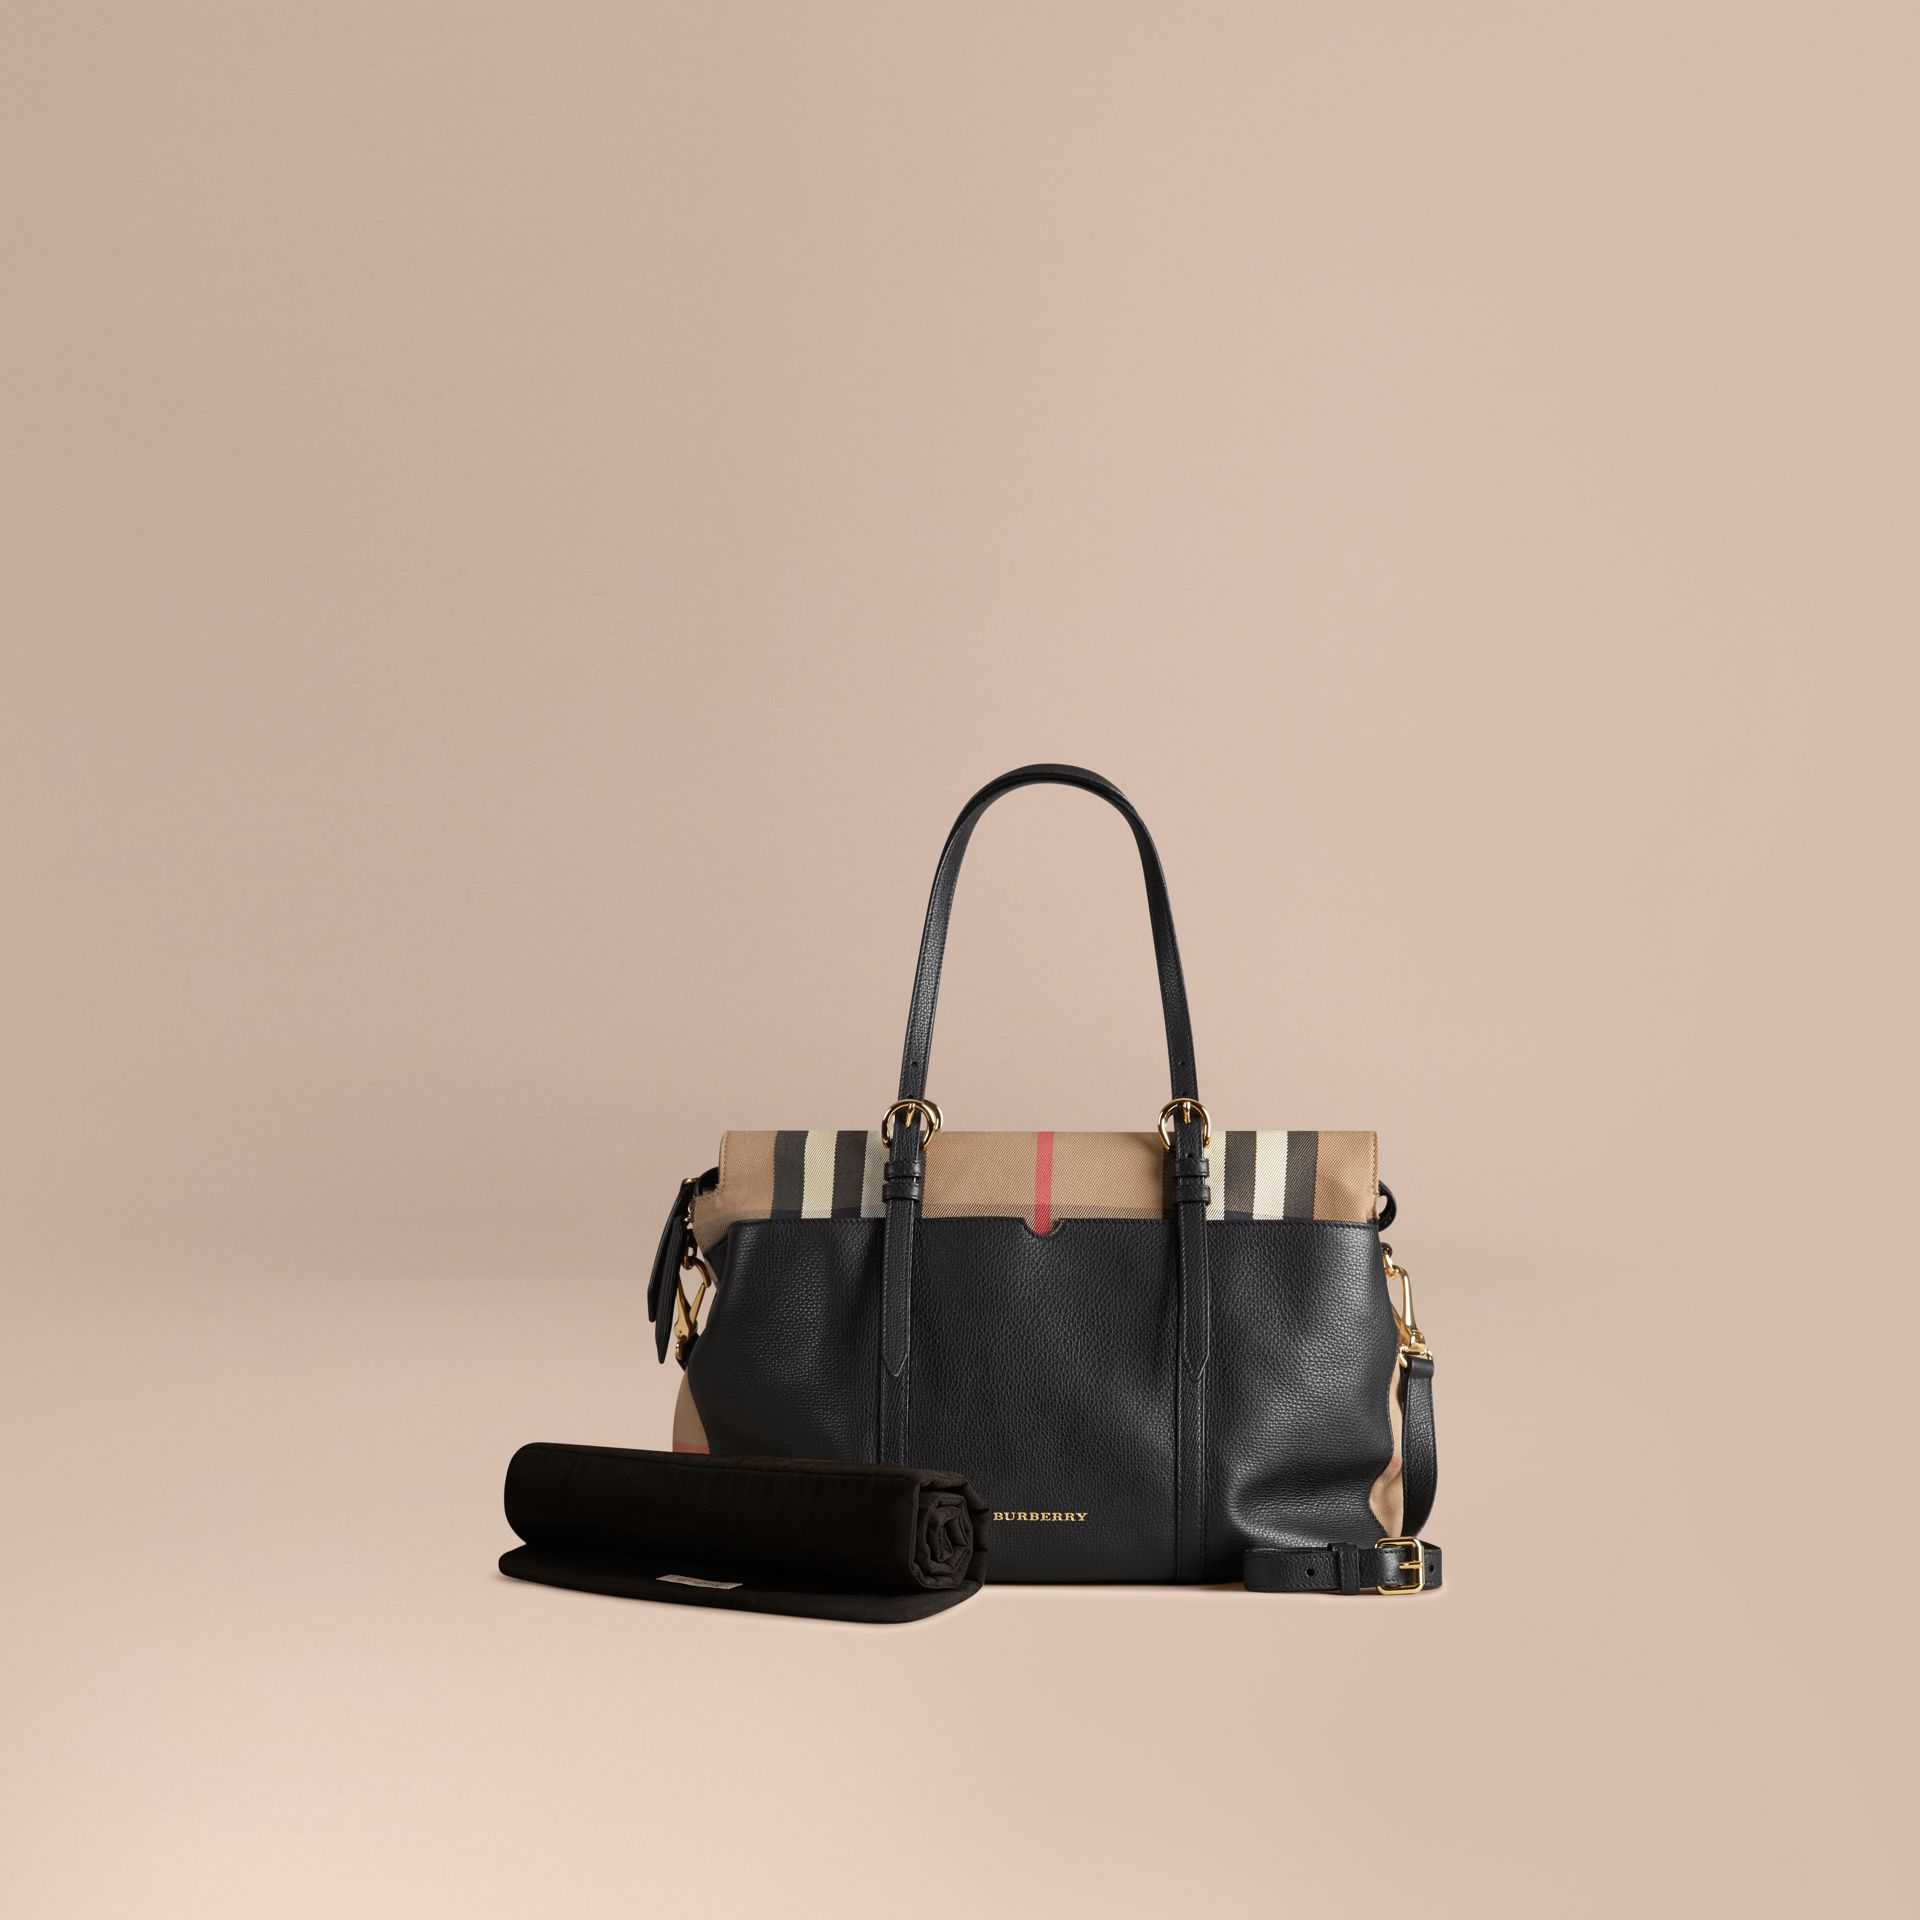 House Check and Leather Baby Changing Bag in Black | Burberry - gallery image 1